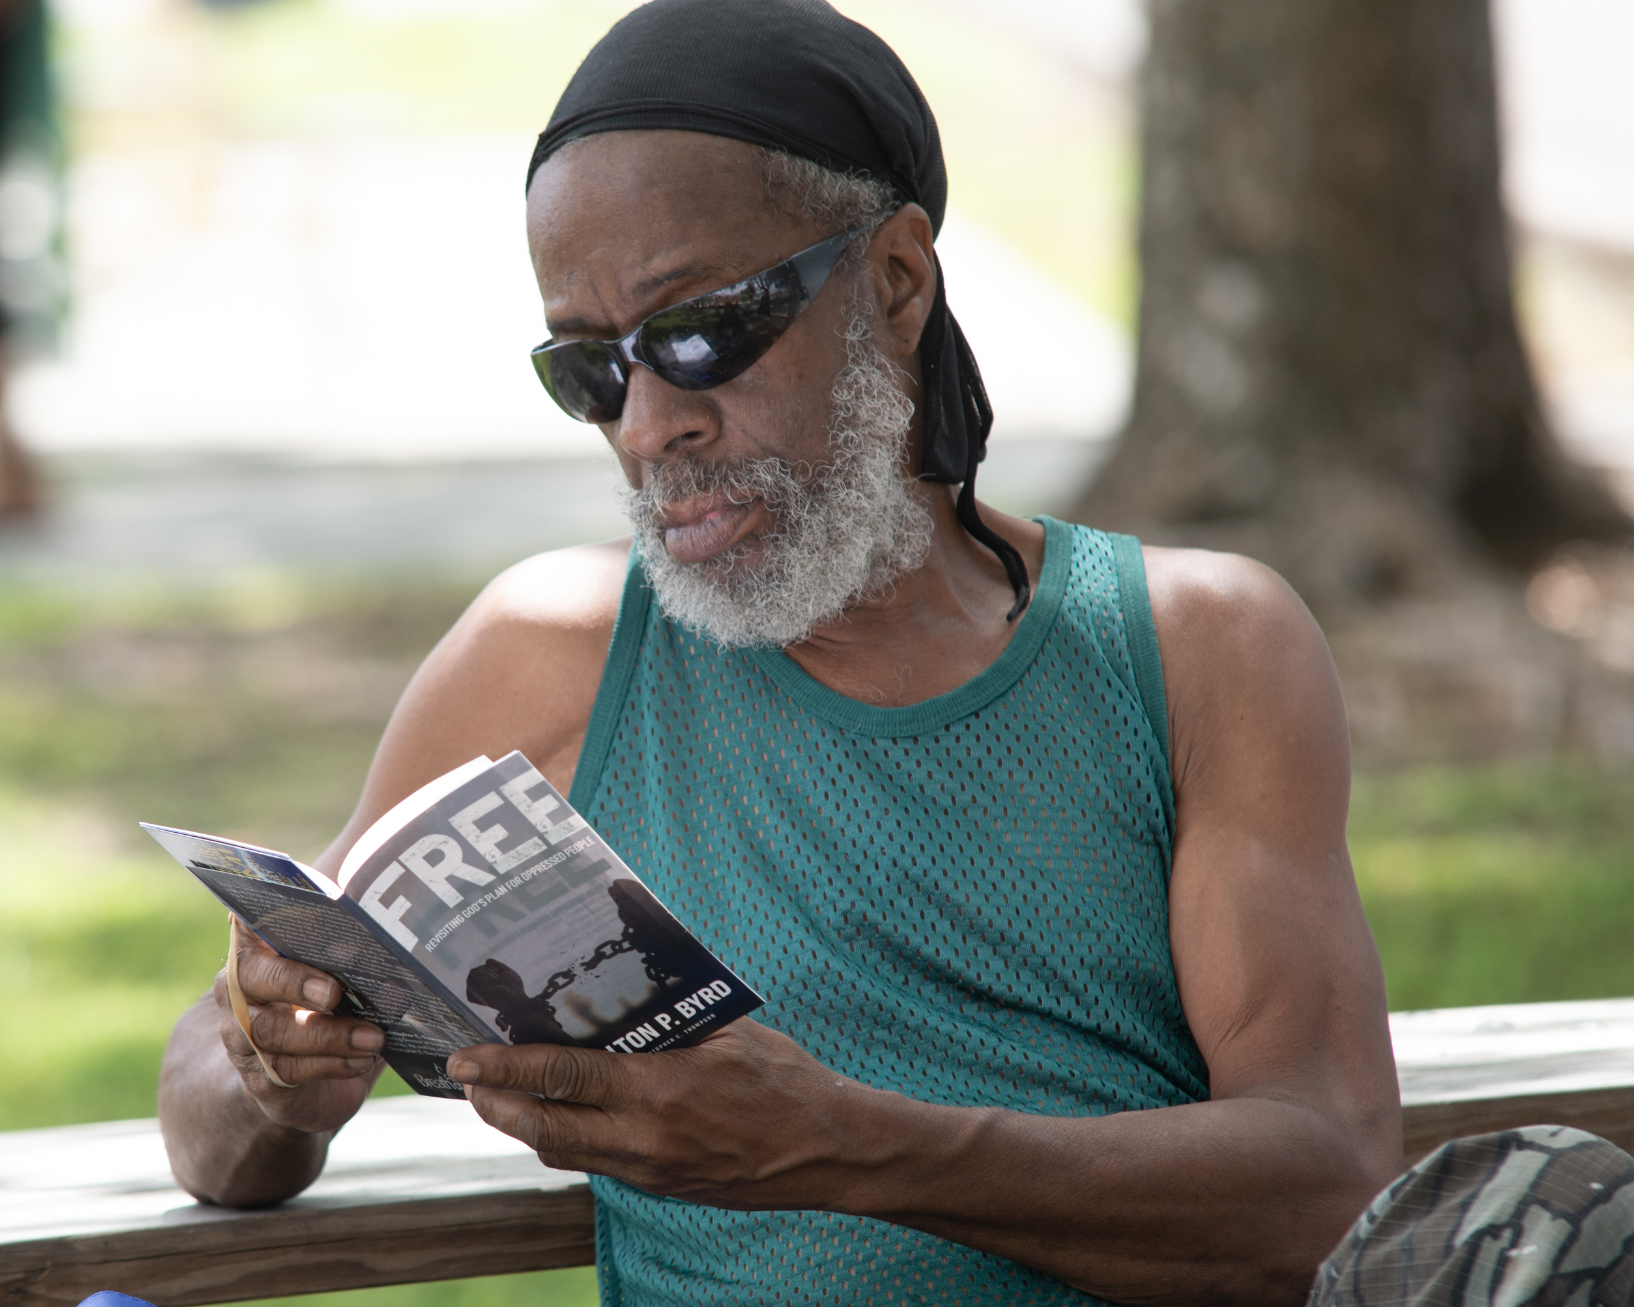 Community member in Miami-area reads a copy of FREE